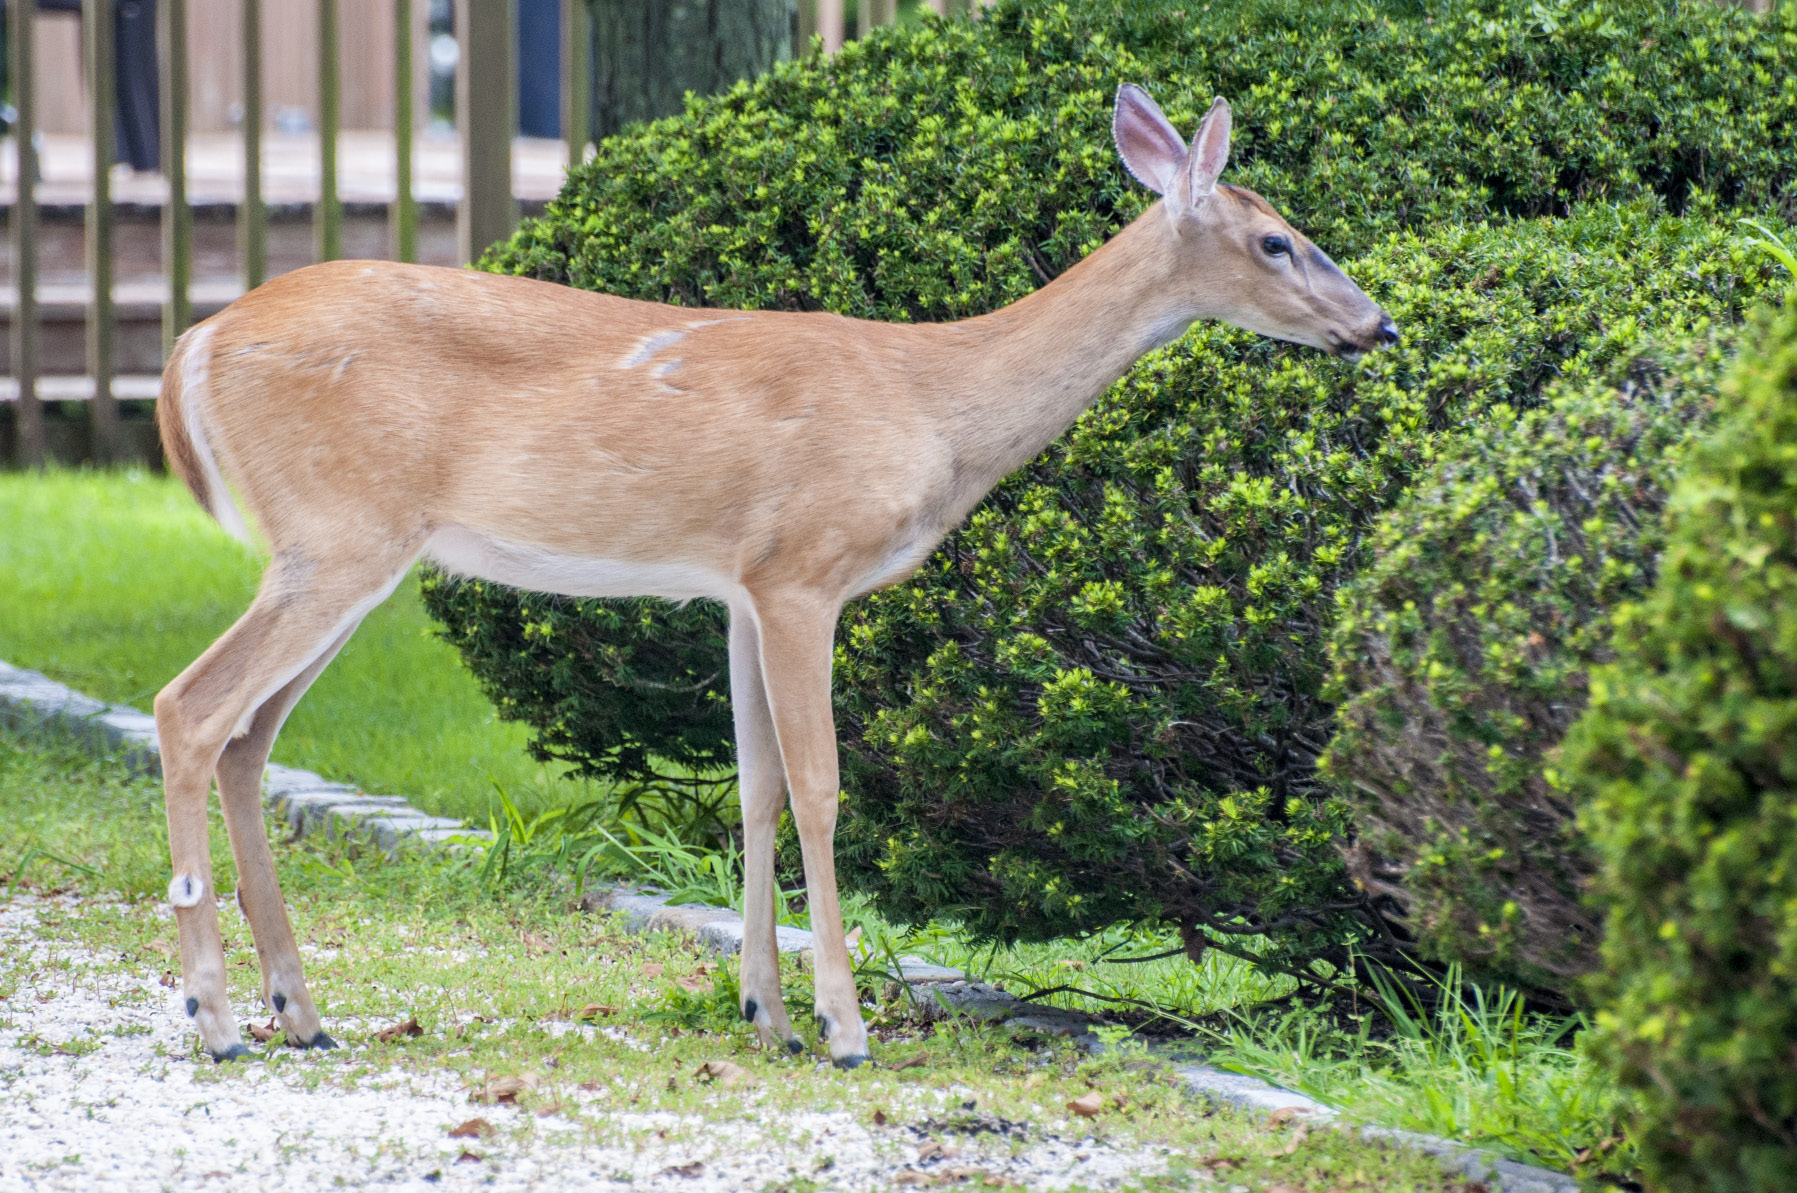 a brown deer with white tail eats shrub in landscape.